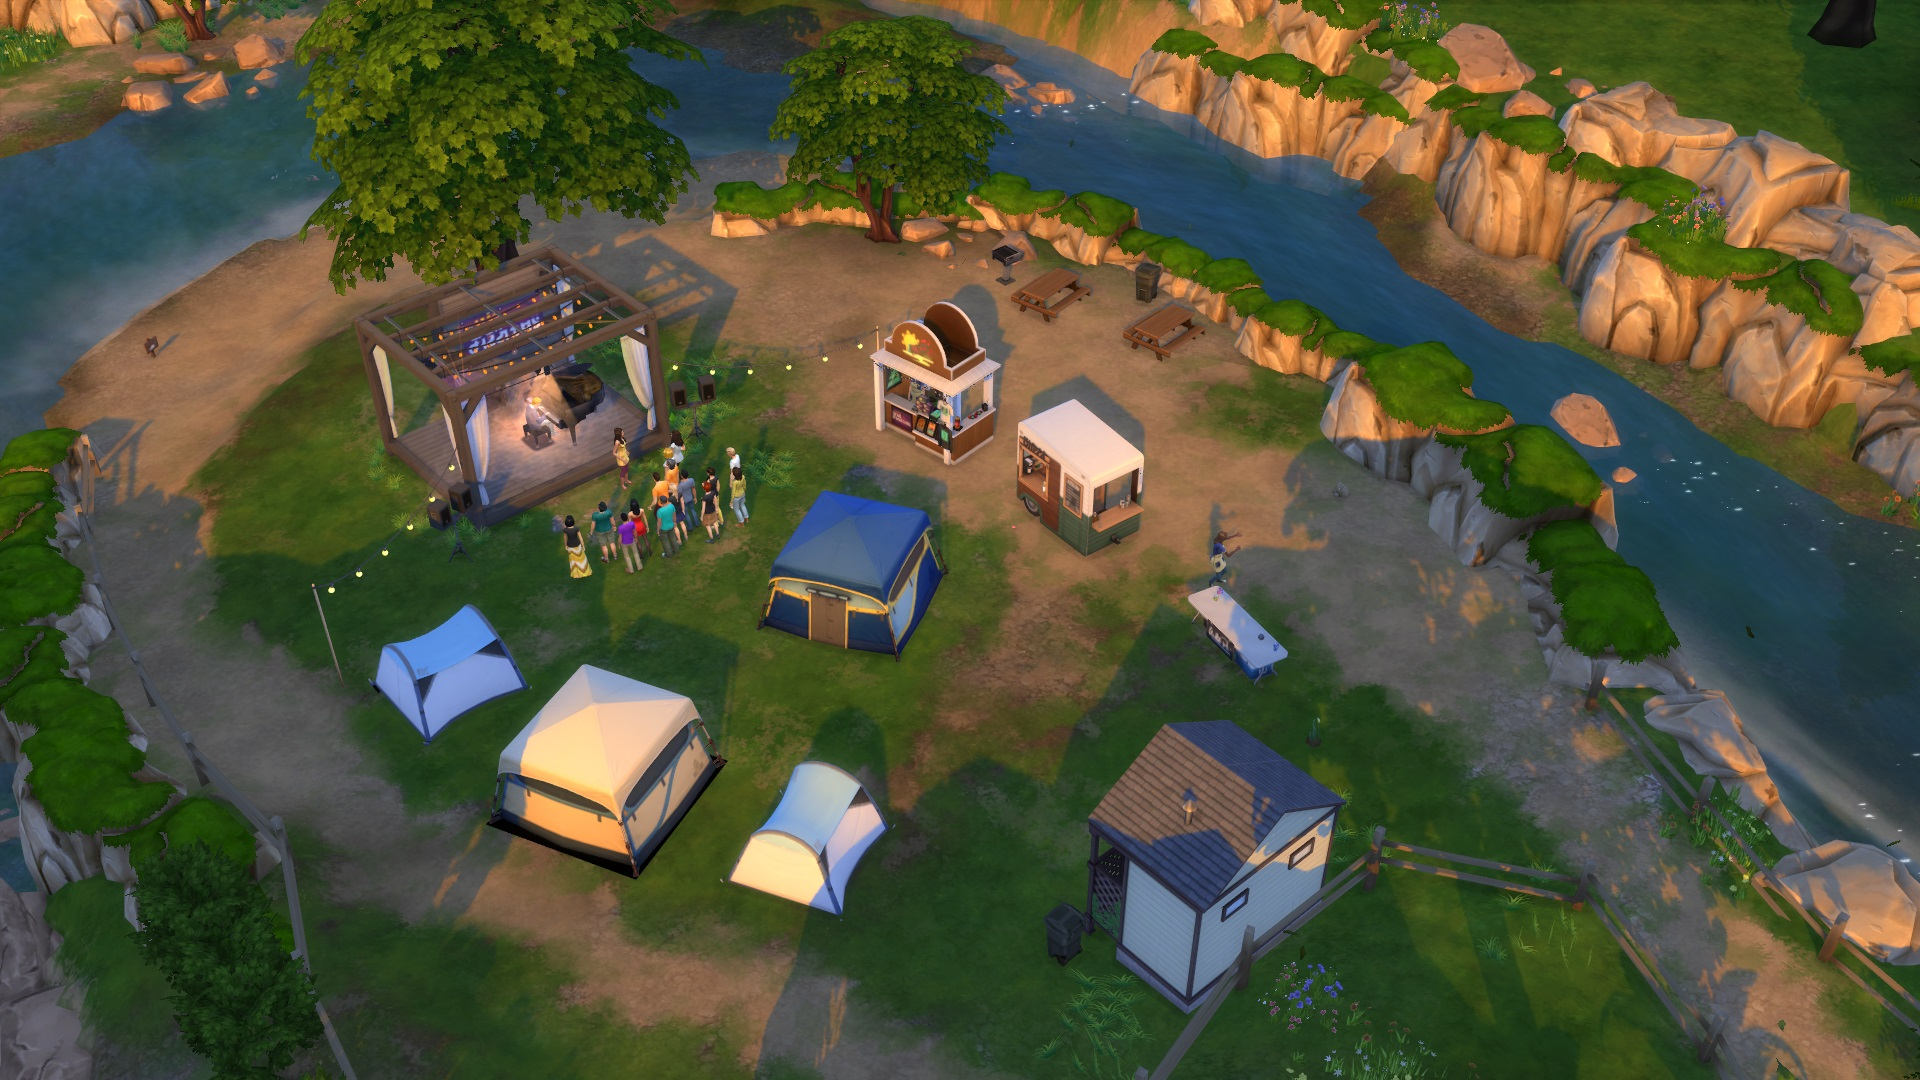 The Sims 4: a large blue tent placed in the middle the Sims Sessions festival site.